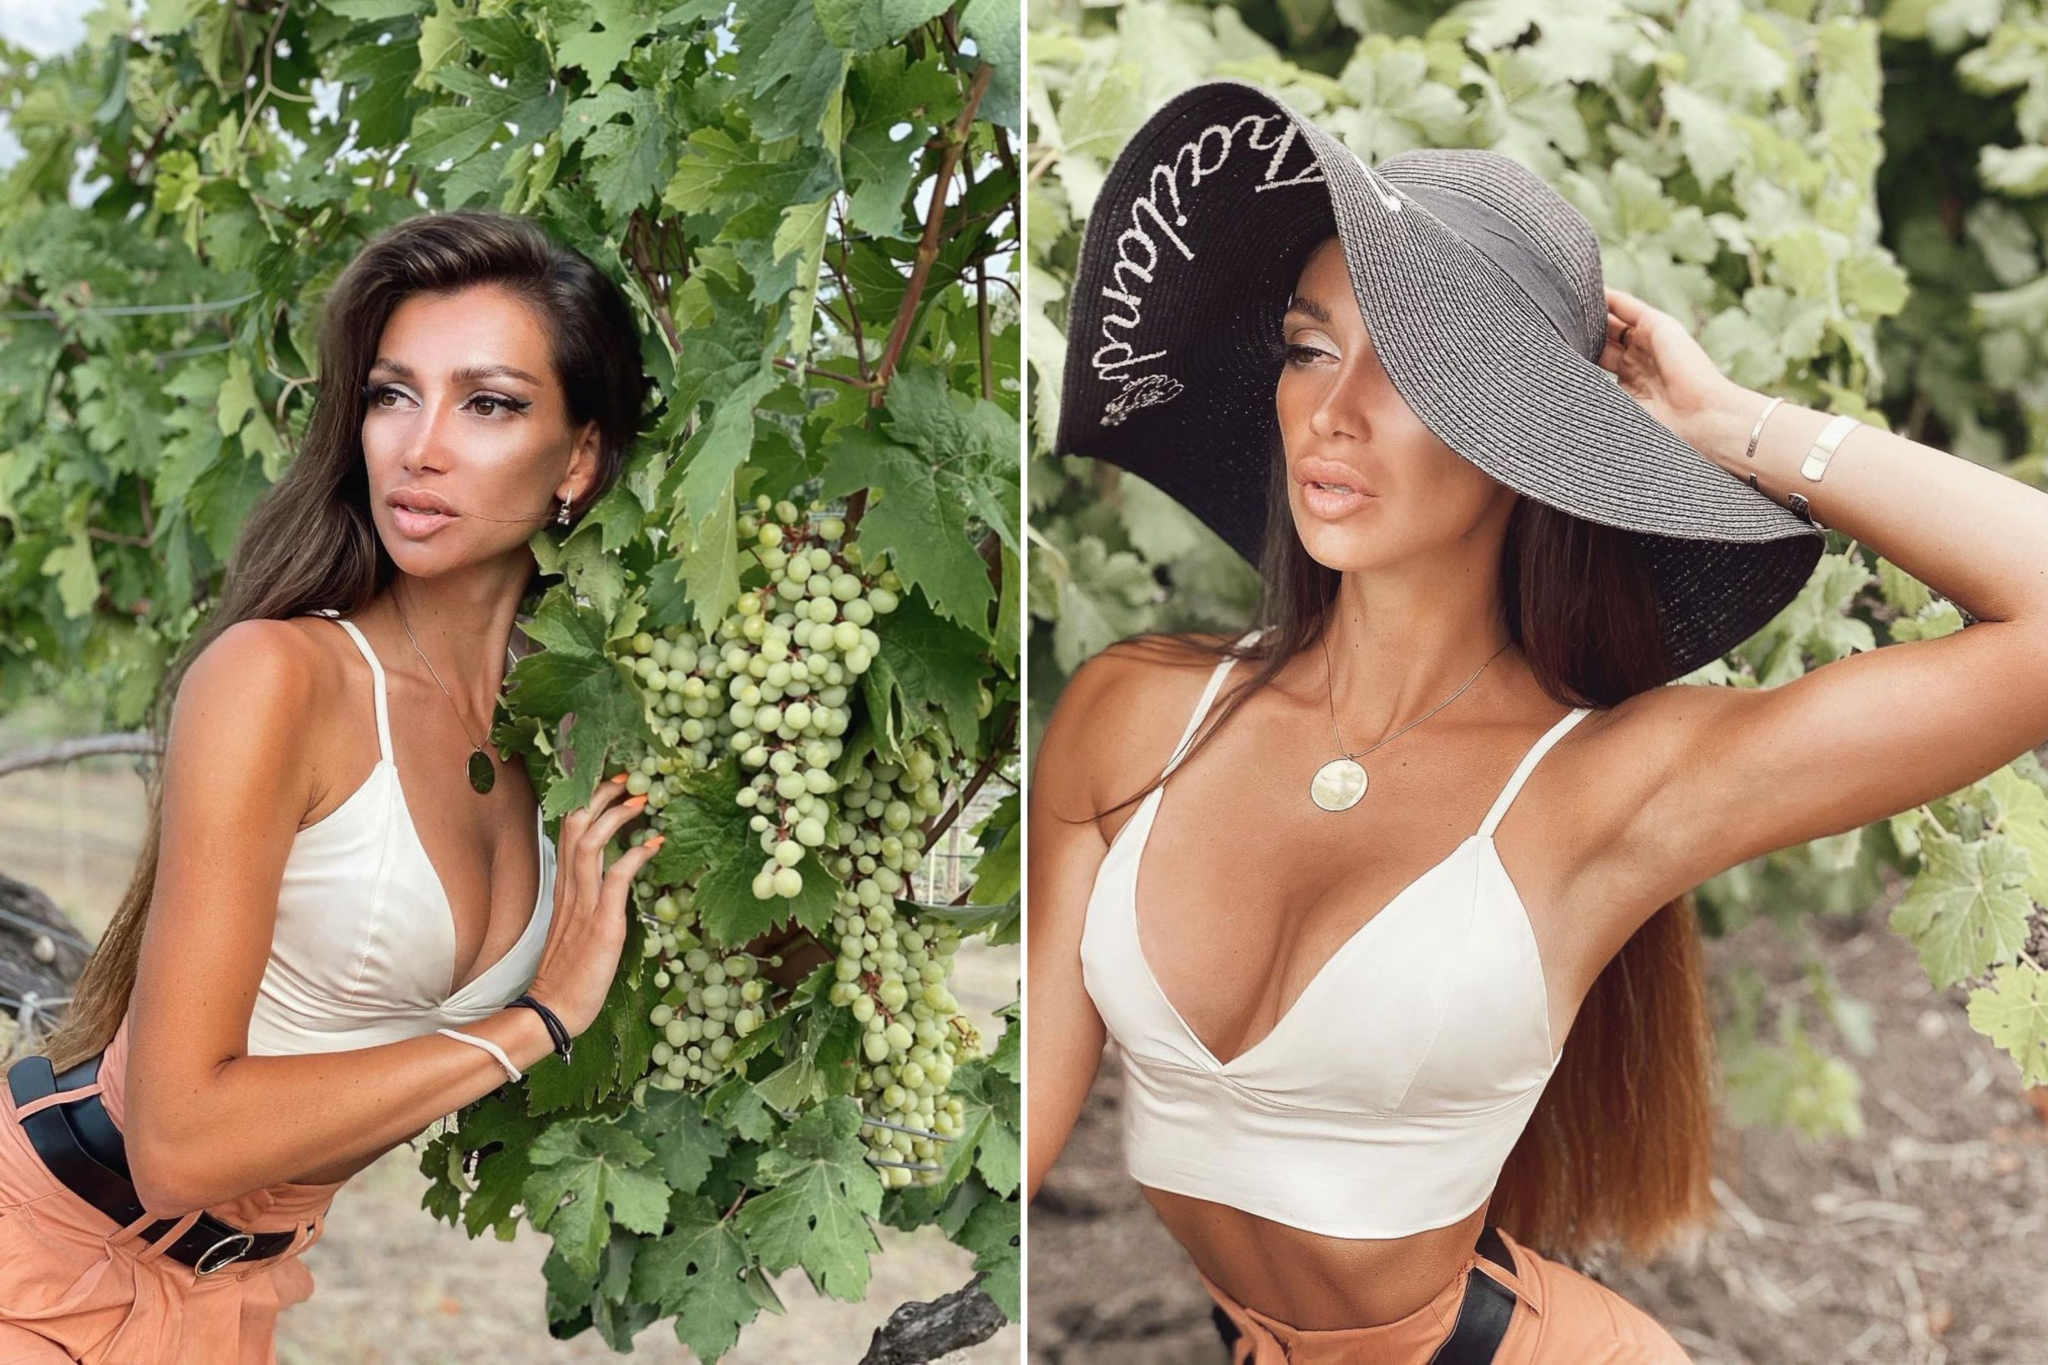 Julia with a big hat and romantic long hairstyle near the grape